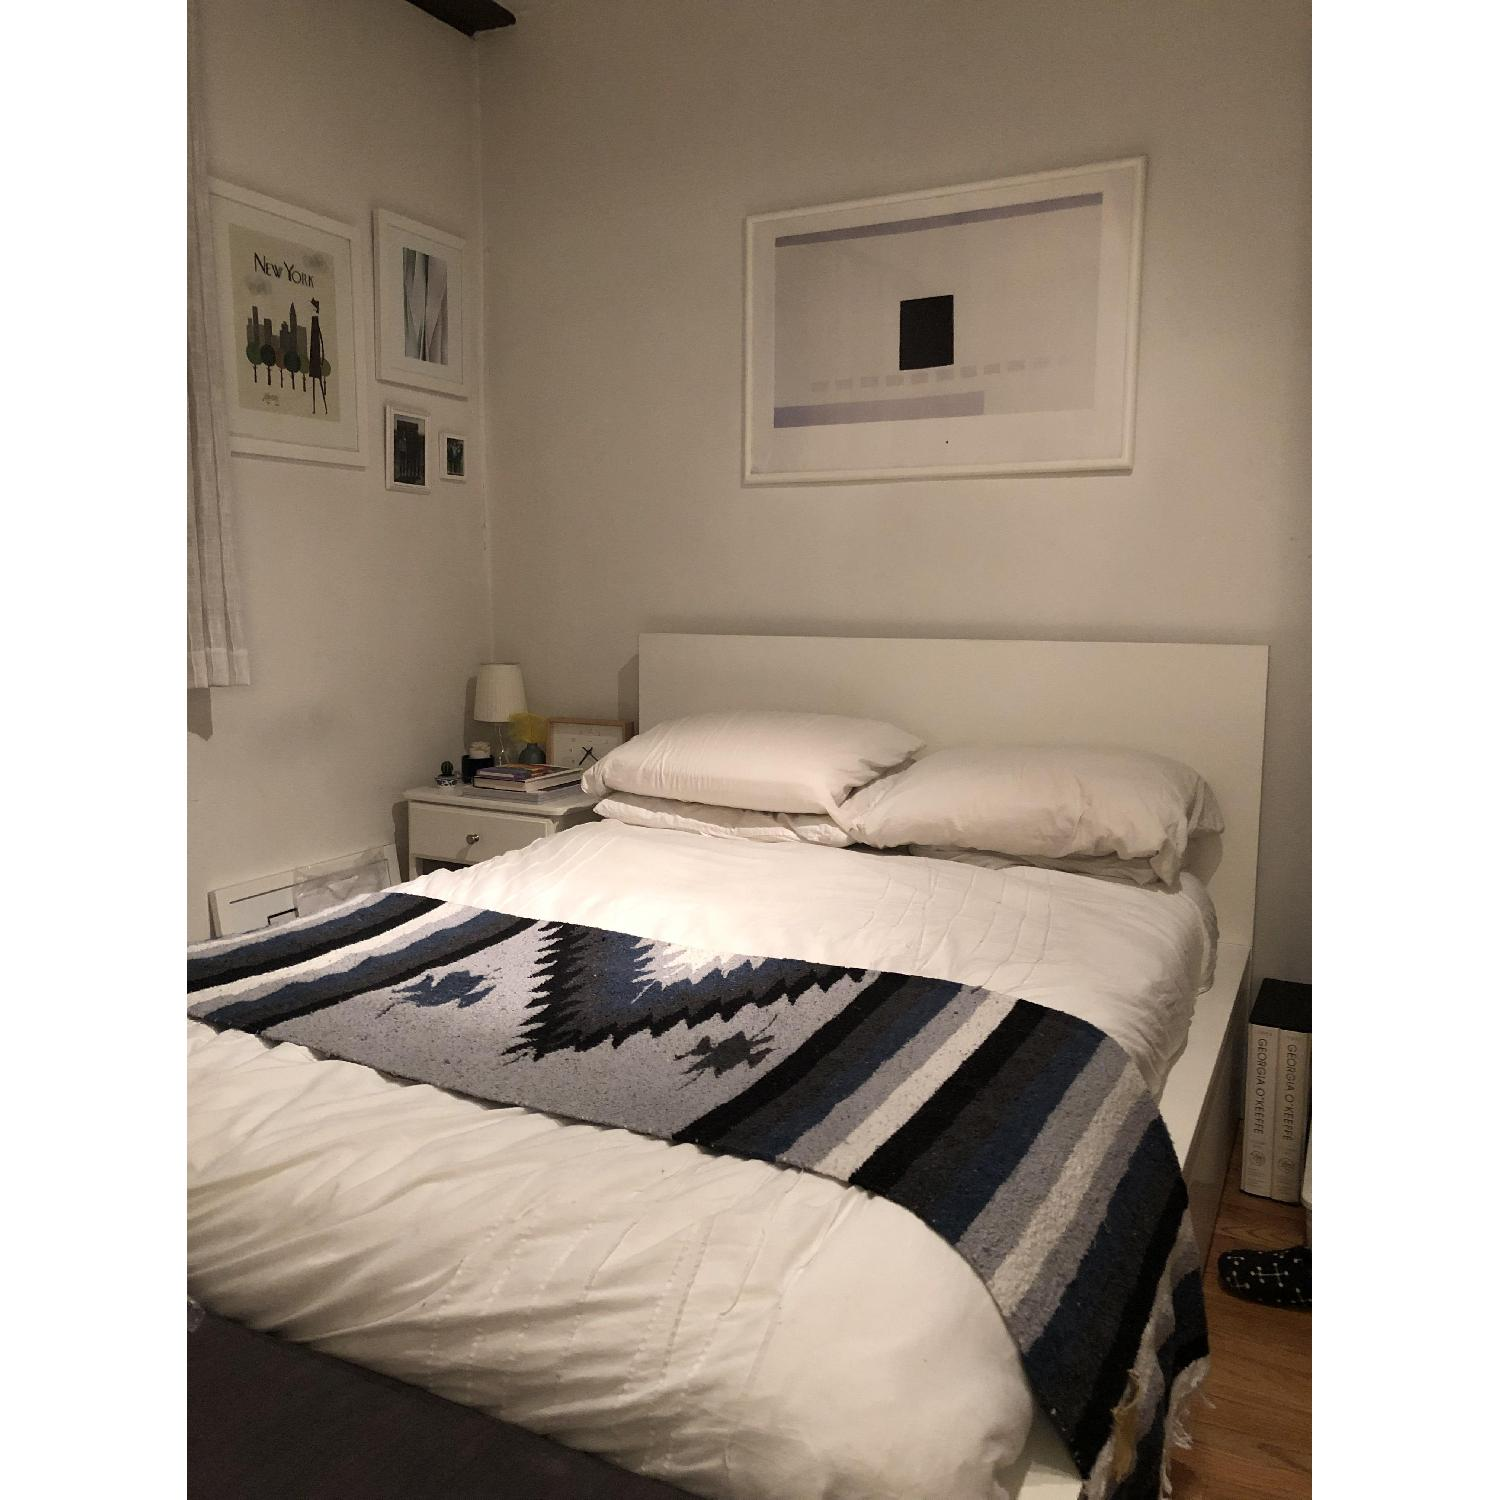 Ikea Malm White Full High Bed Frame w/ 4 Storage Boxes - image-1